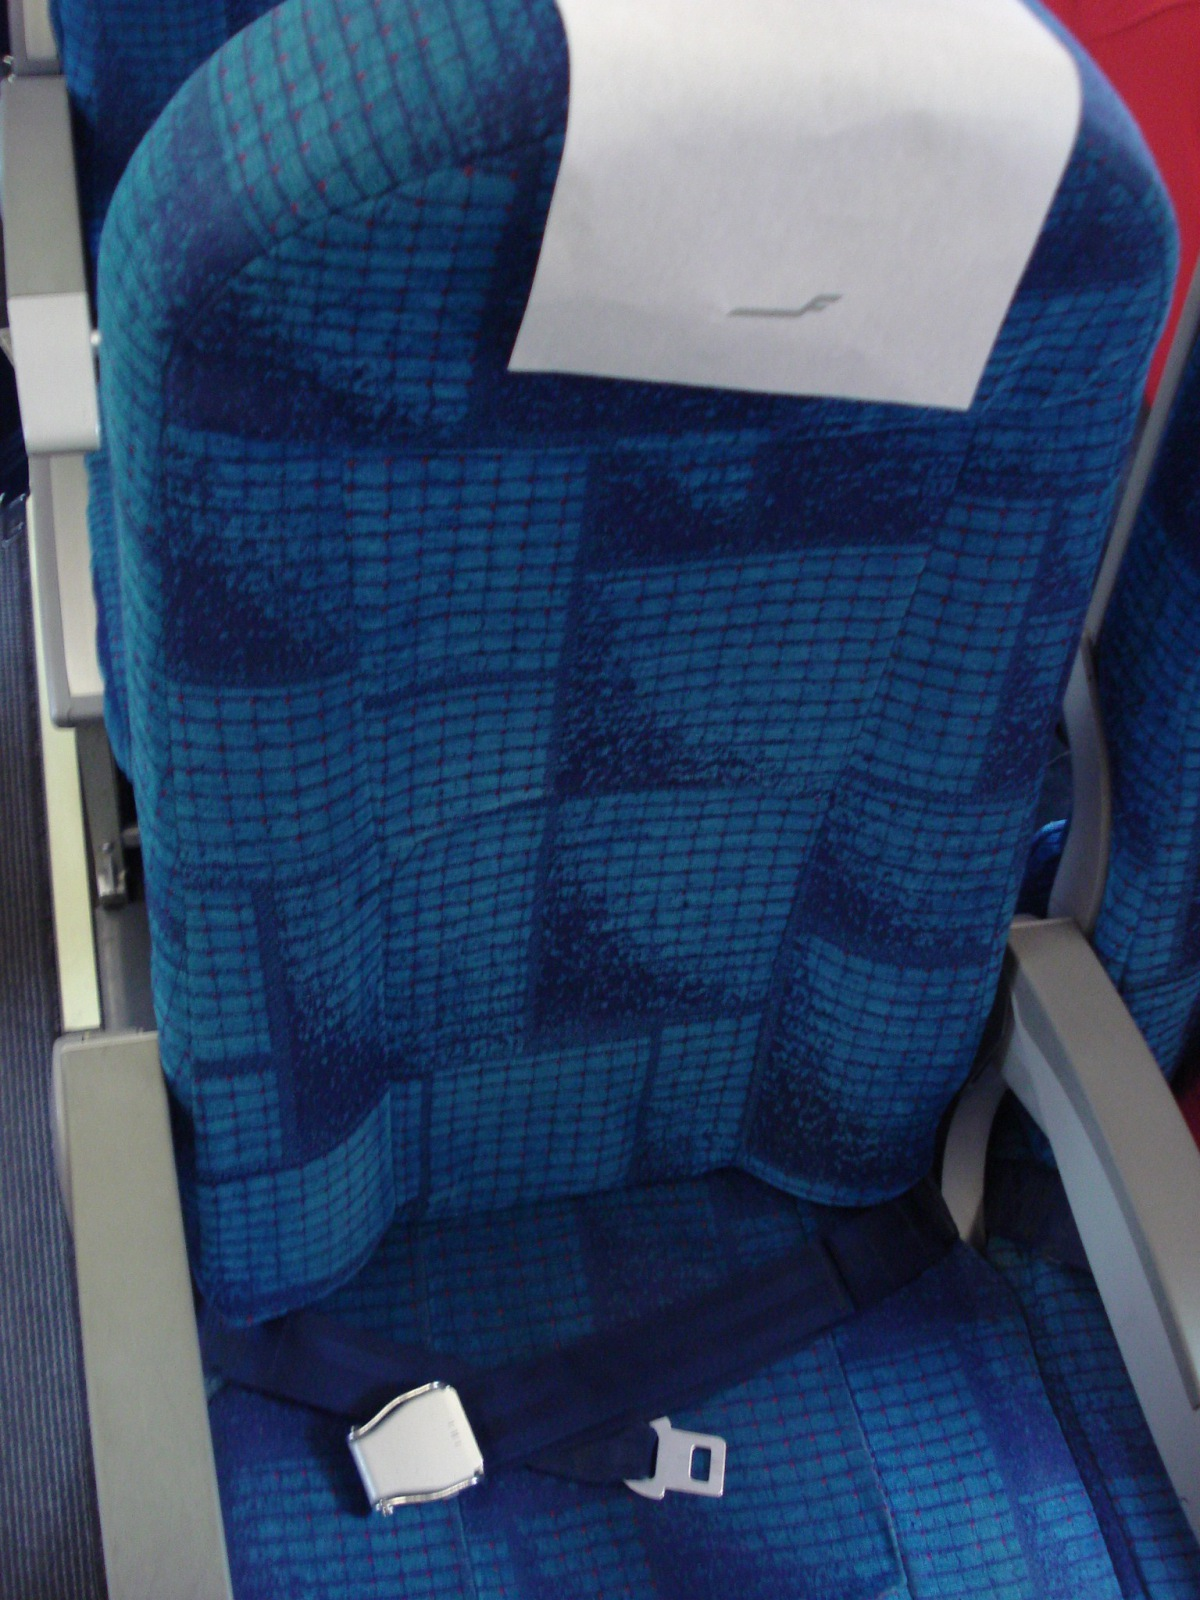 Passenger cabin of an Embraer 190 of Finnair